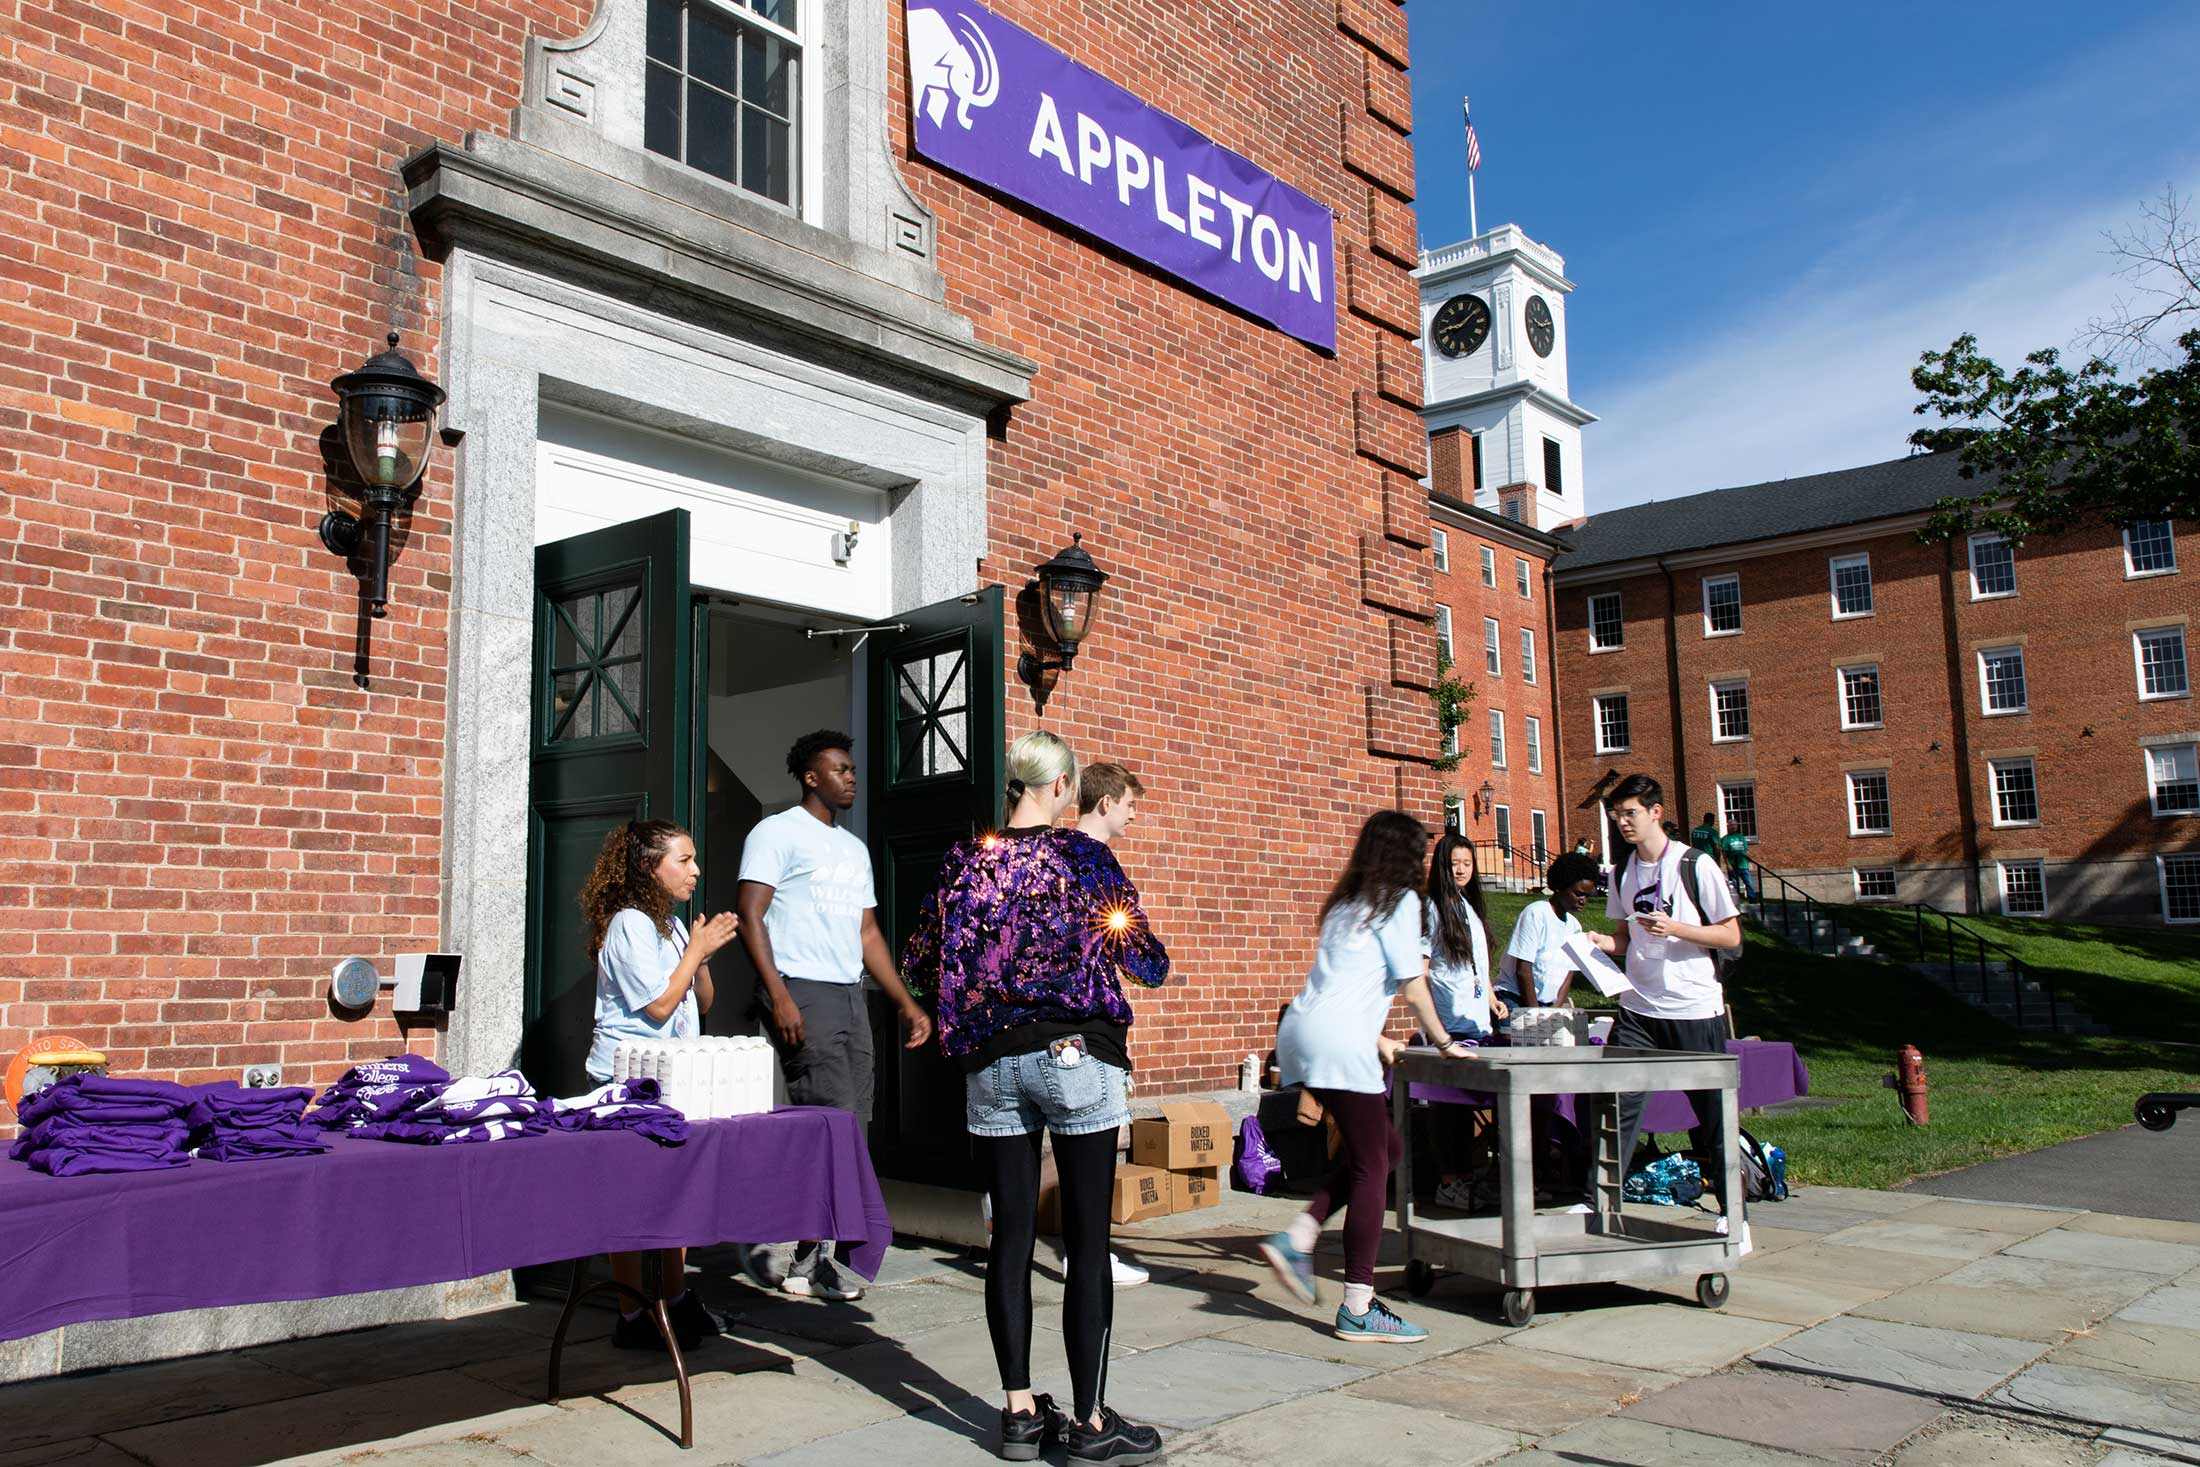 Amherst College staff greet new students arriving in front of Appleton Hall